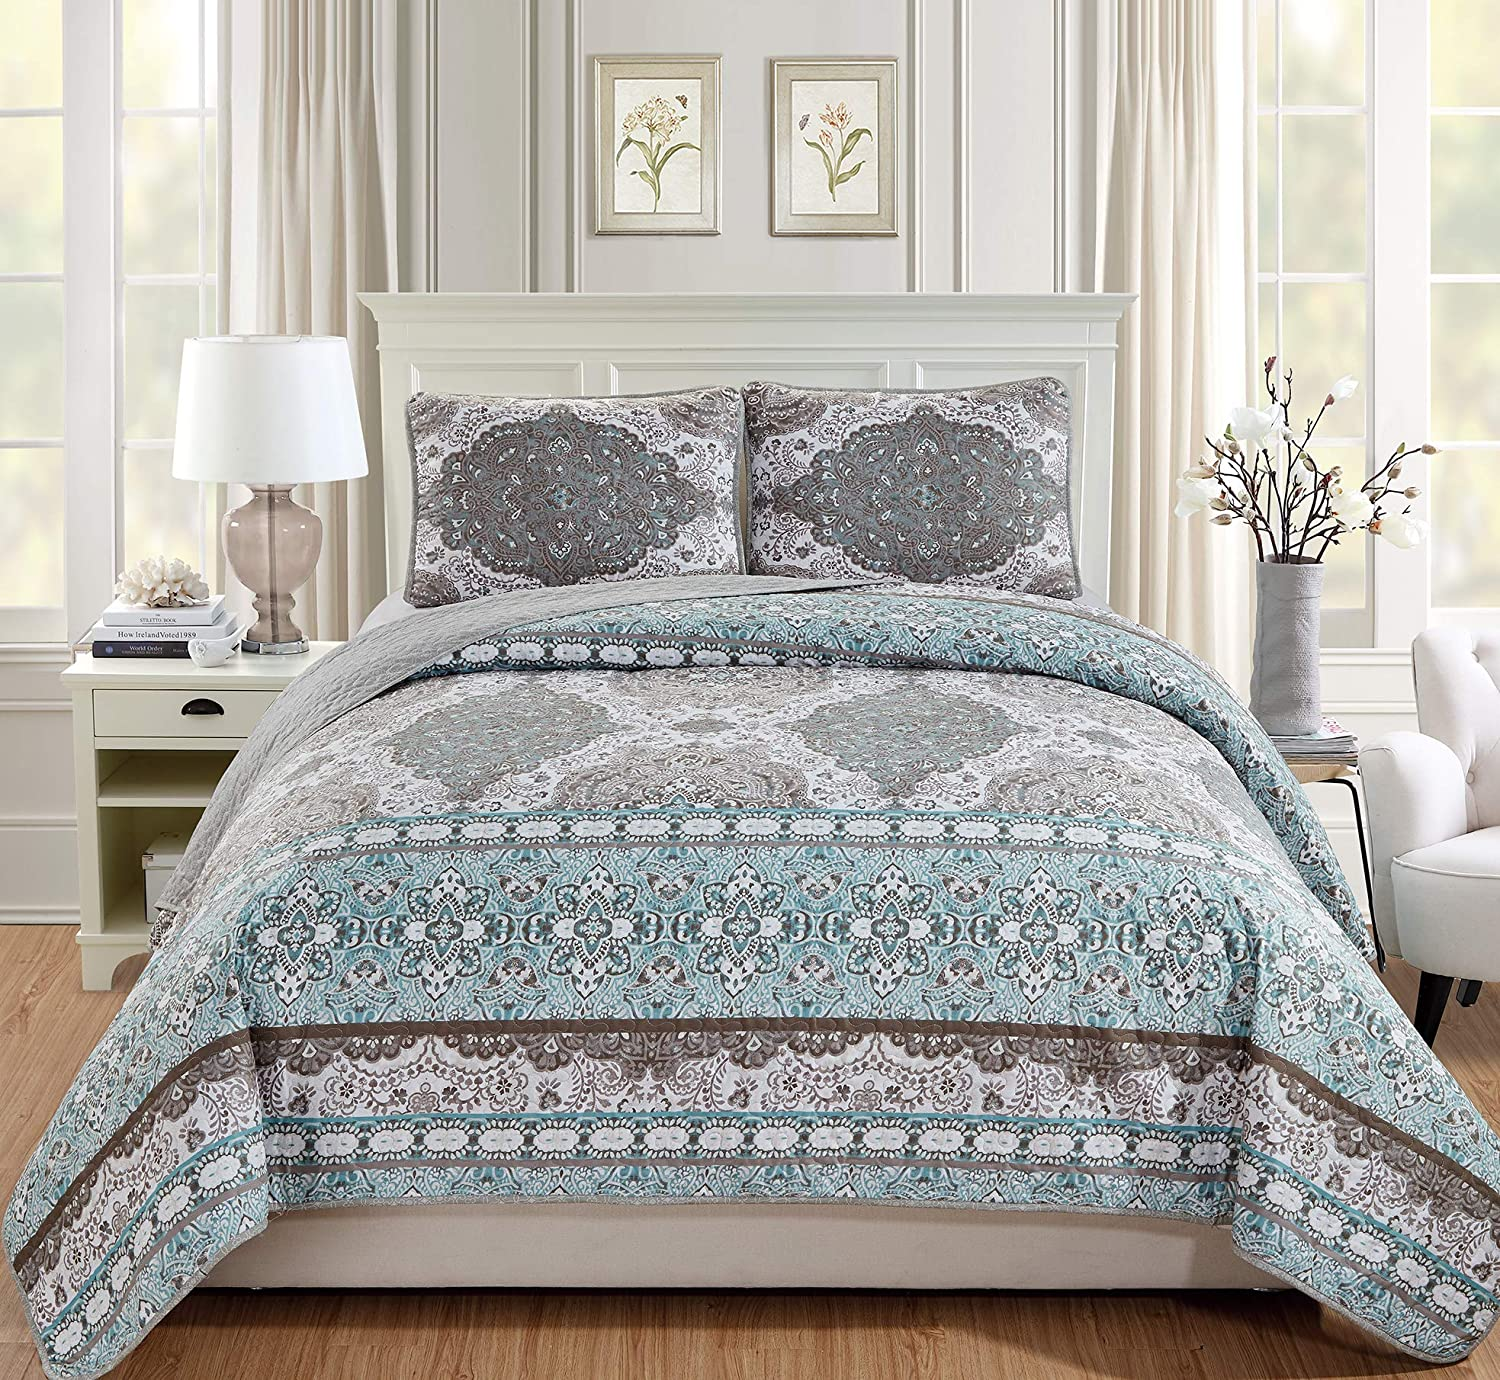 Mk Home 3pc King/California King Bedspread Coverlet Set Floral Aqua Blue Grey White Taupe New